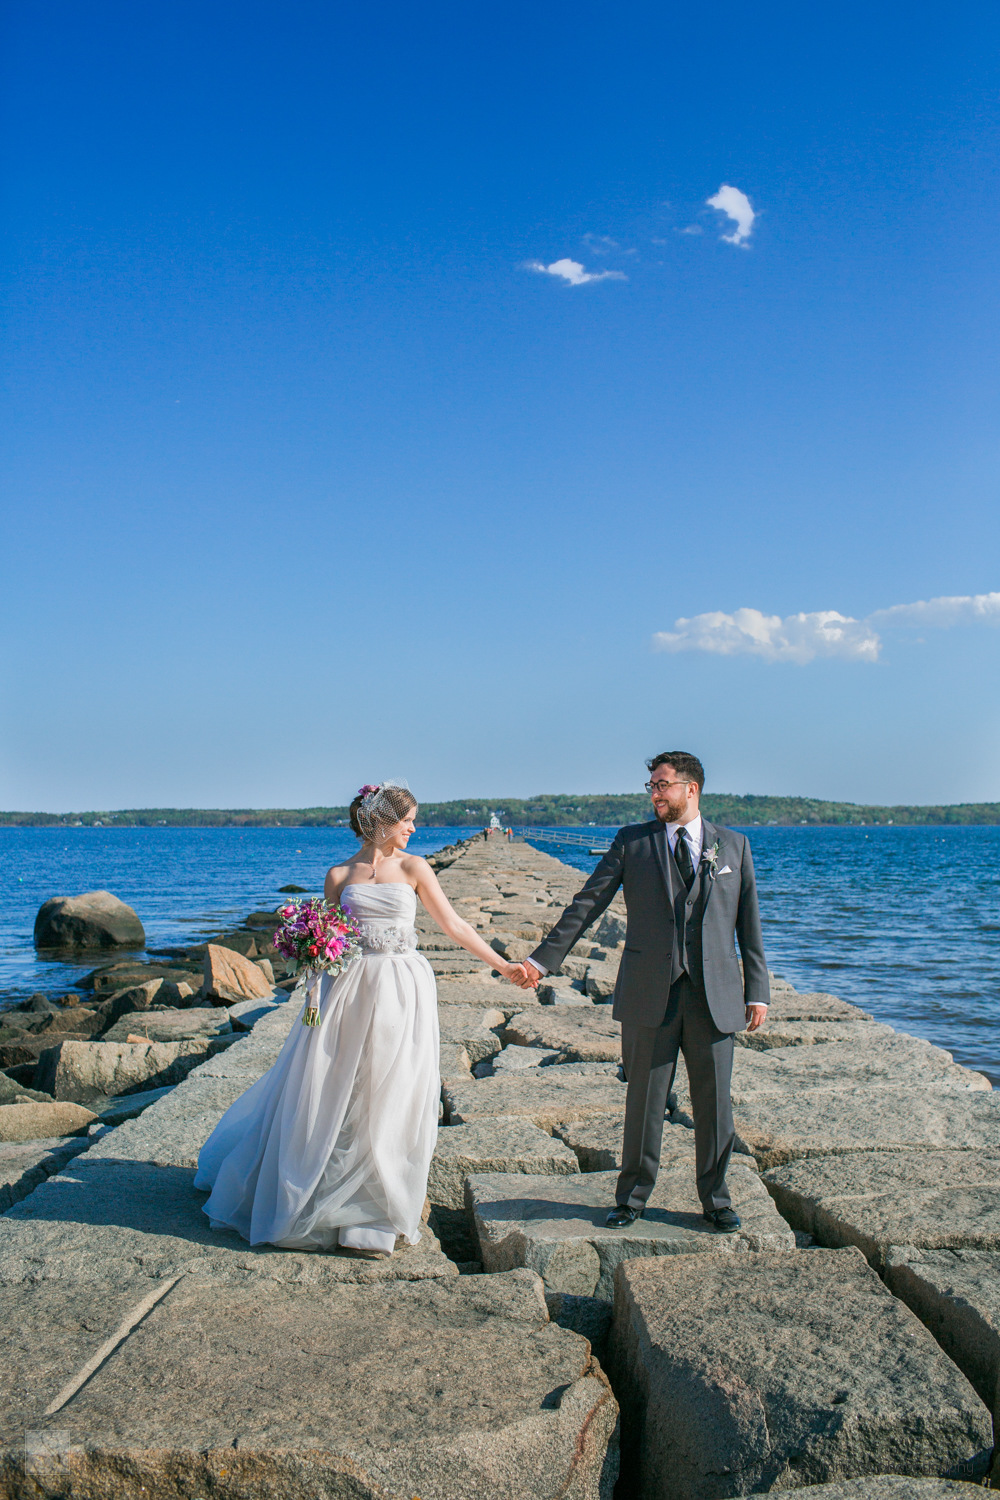 Wedding portraits at the Samoset Resort in Rockport, Maine